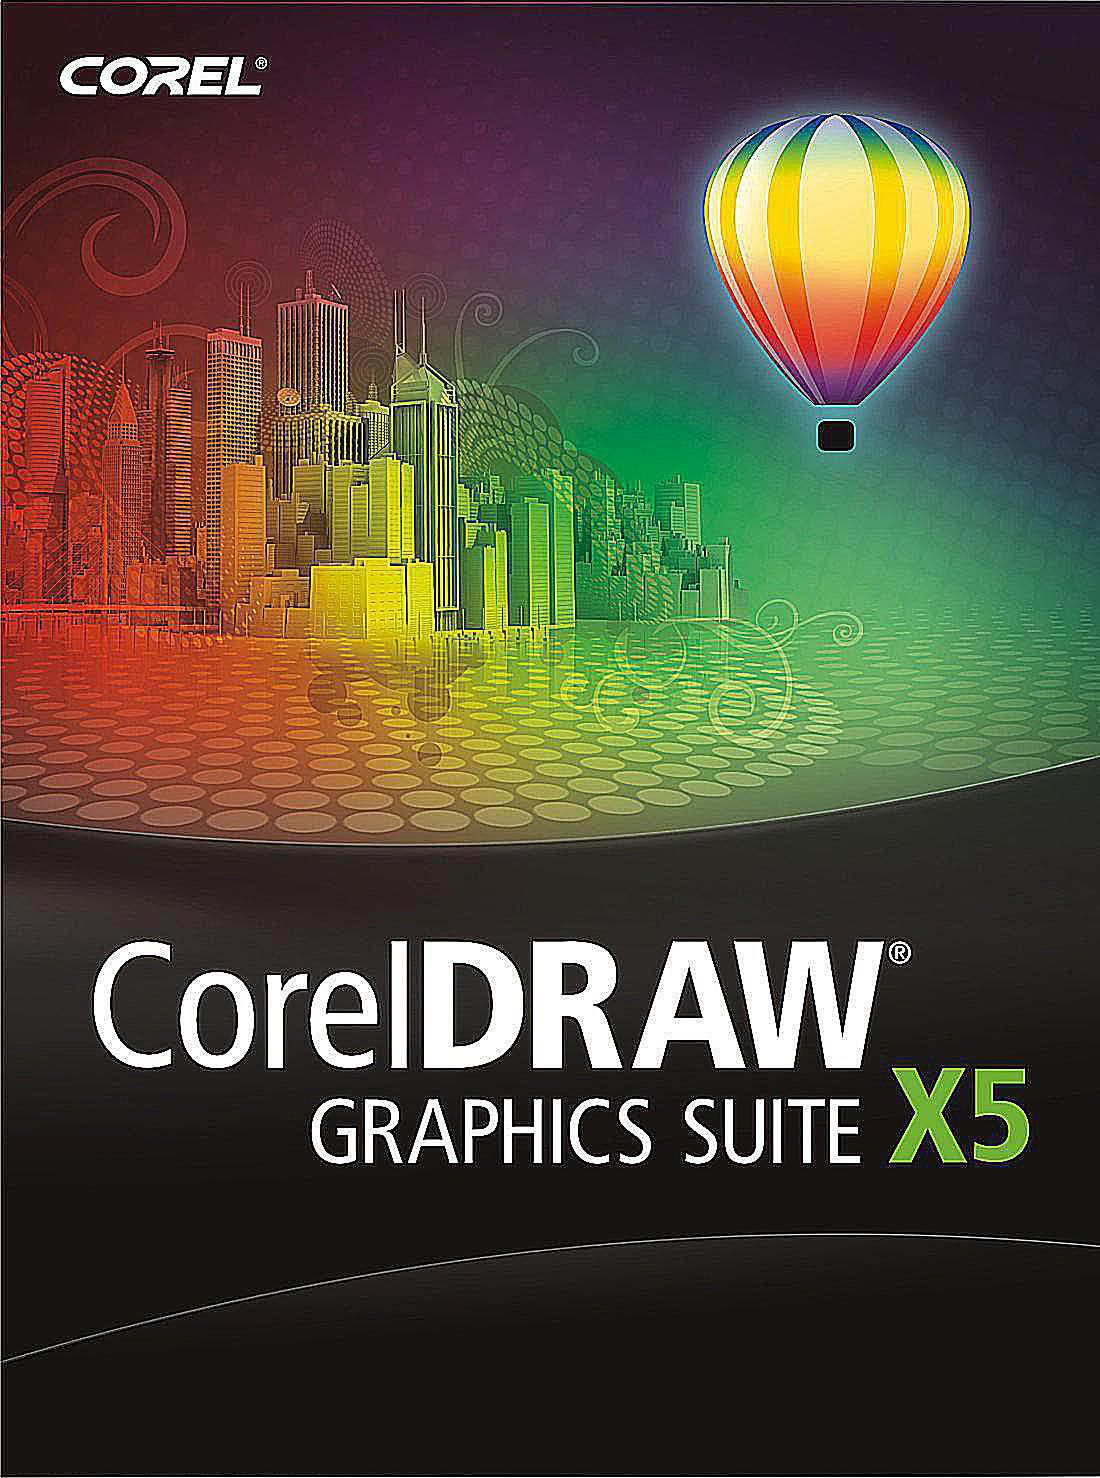 Corel Desktop Publishing Software Overview And Reviews